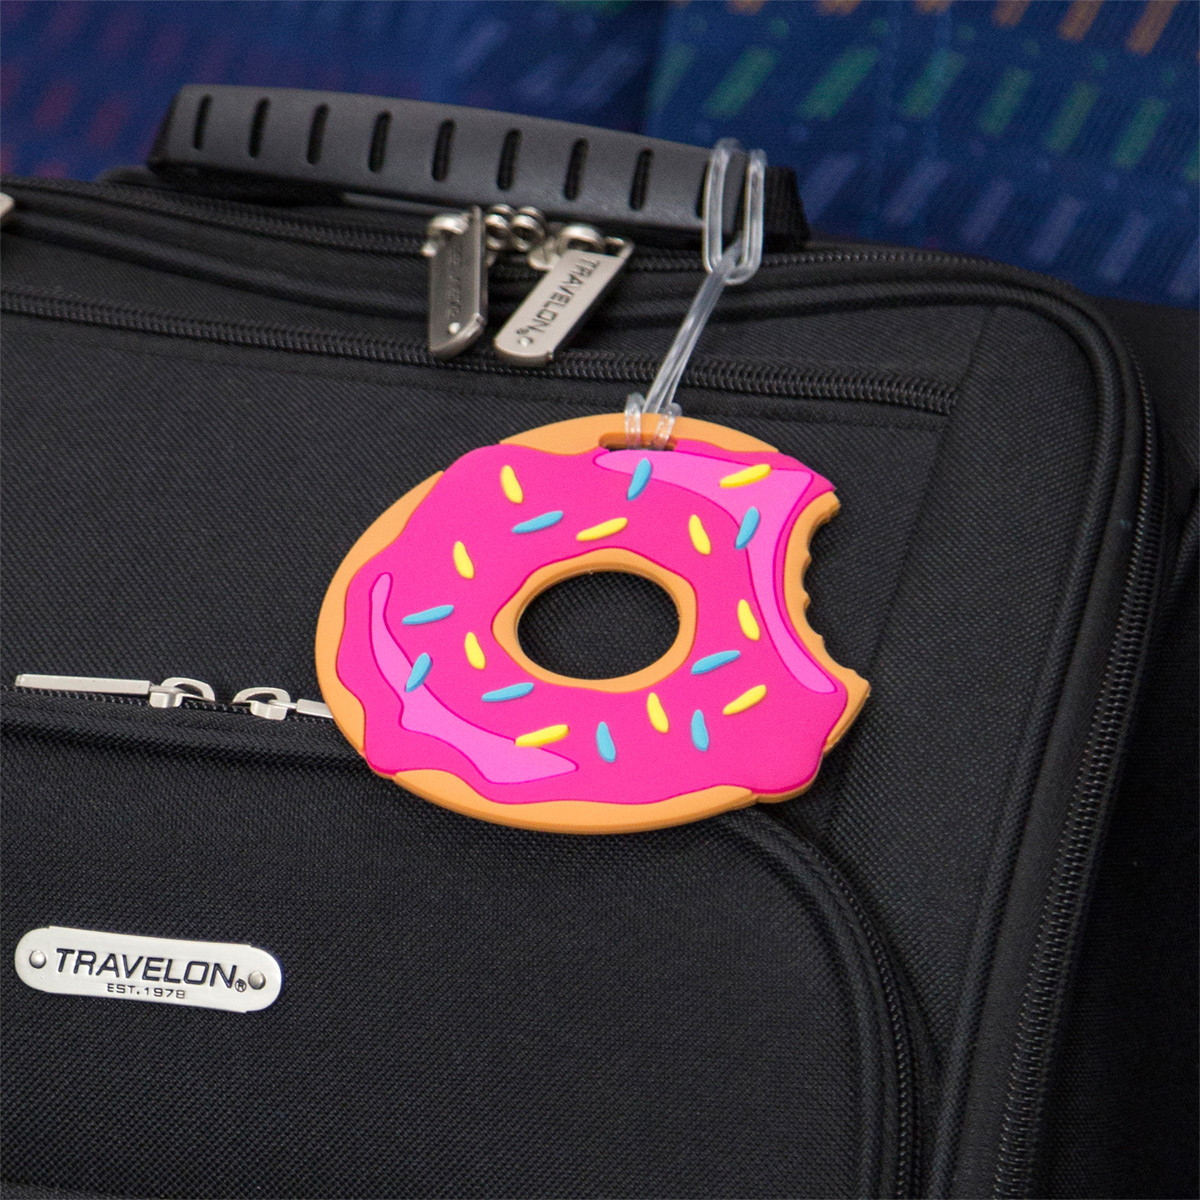 Travelon Donut Luggage Tags